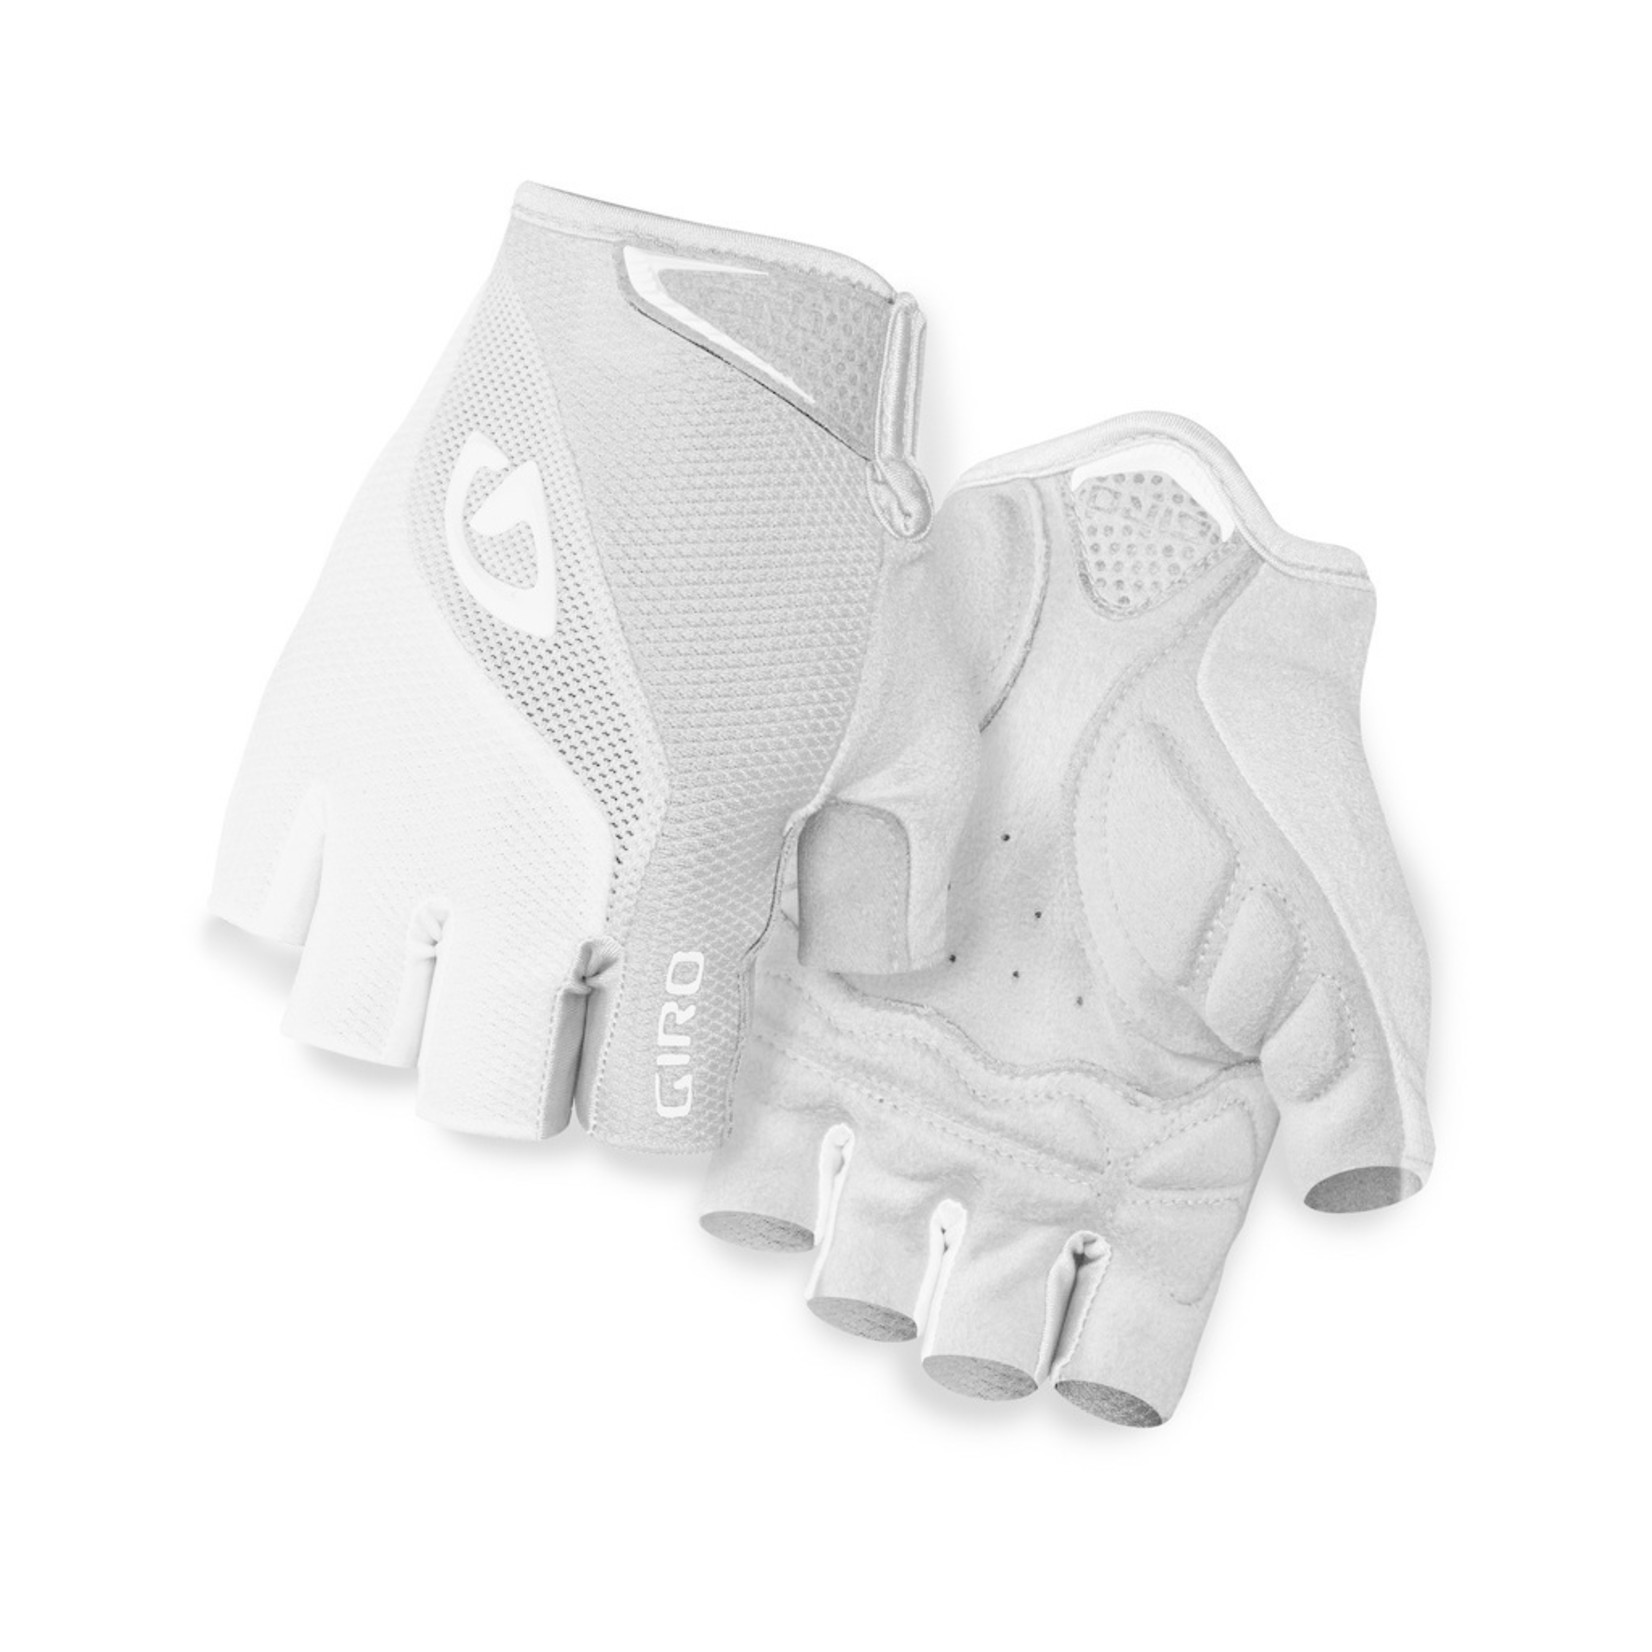 GIRO Gloves Giro Bravo Gel White/Silver